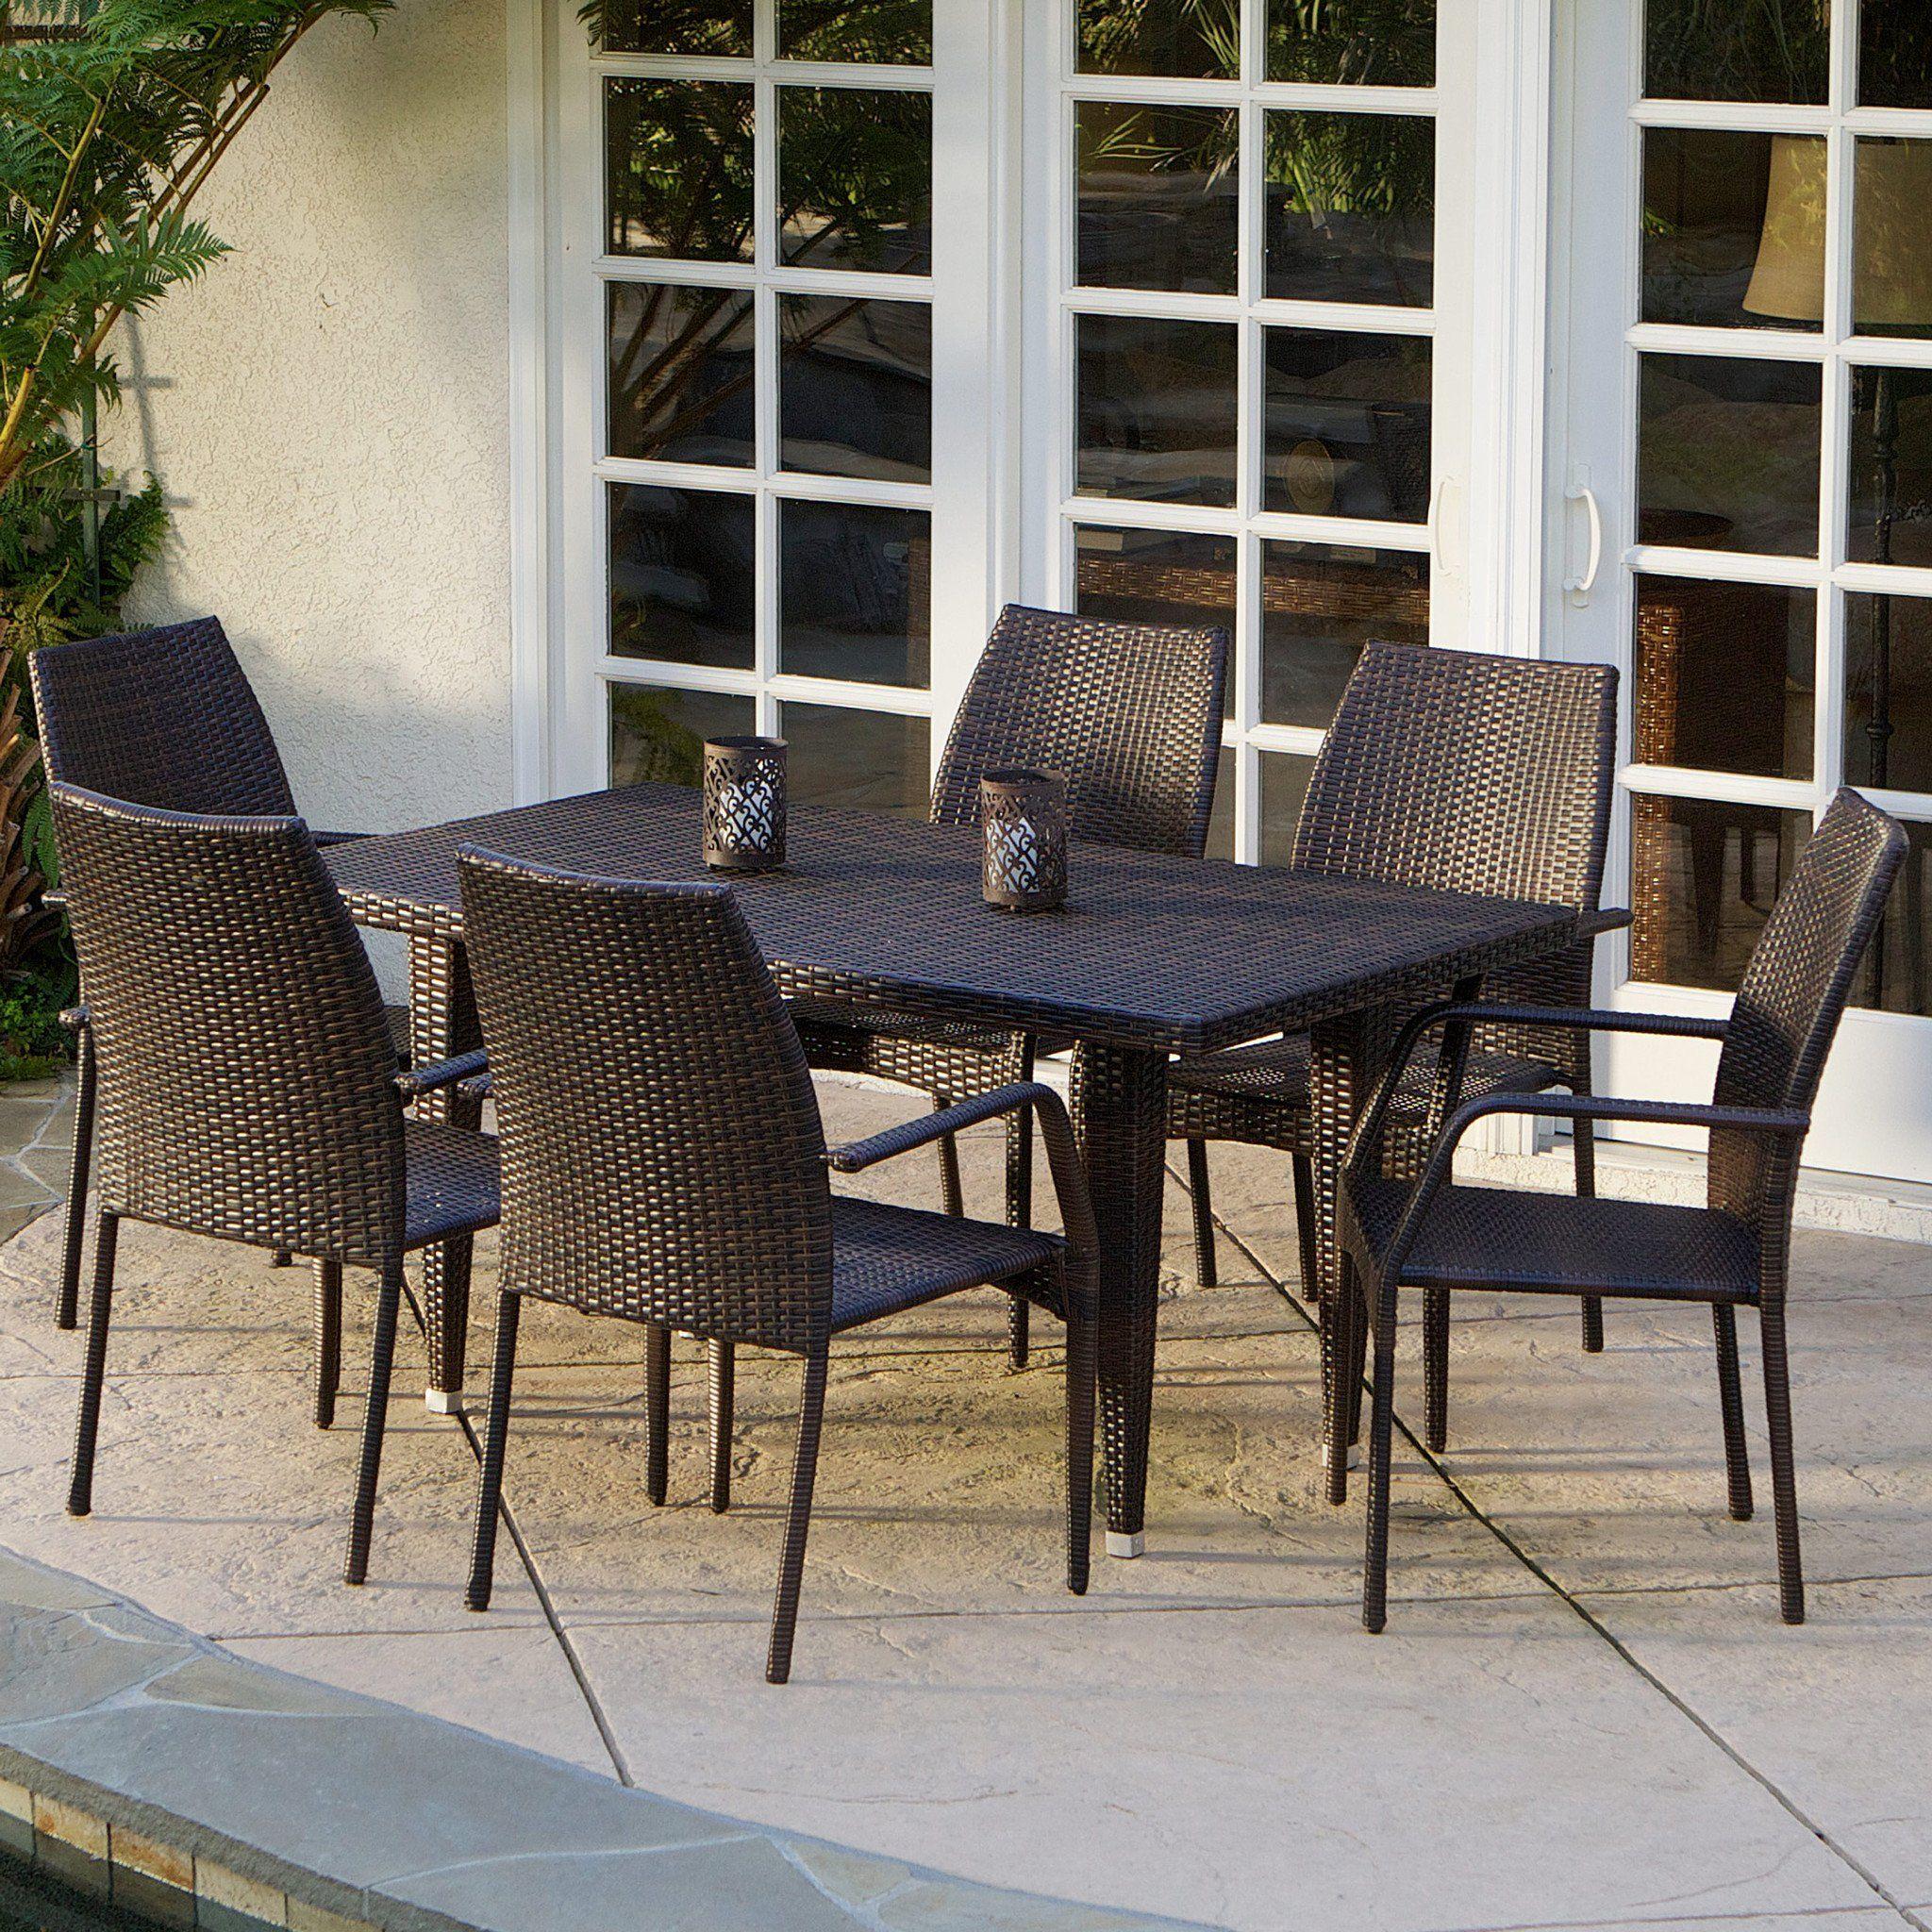 Michael 7 Piece Outdoor Wicker Dining Set The Michael 7 Piece